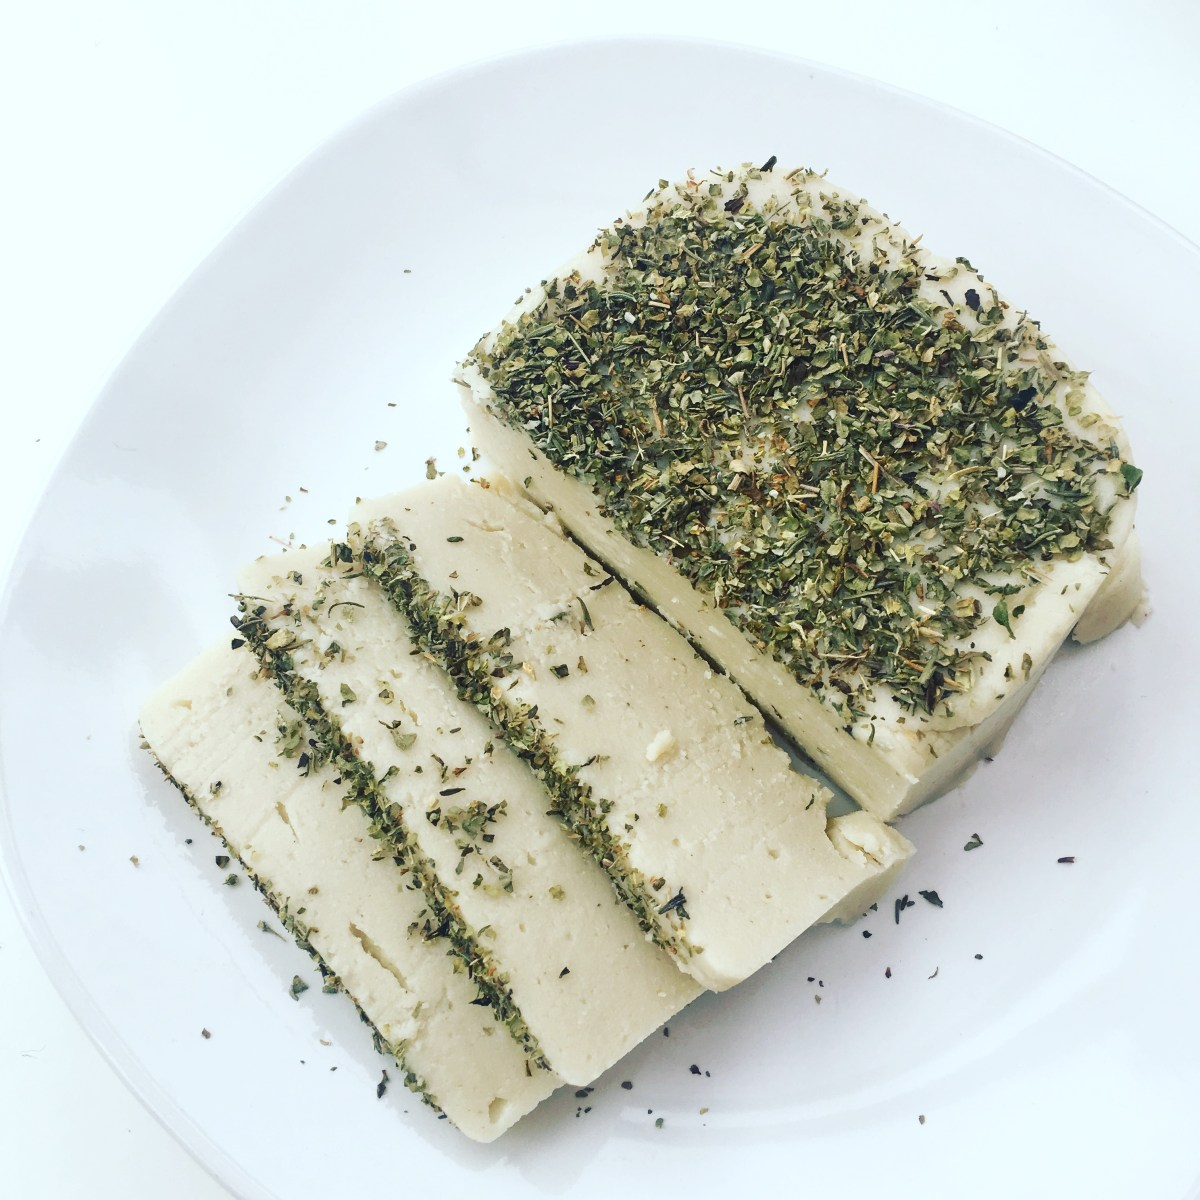 Easy Garlic and Herb Vegan Cheese (queijo vegano de alho e ervas)